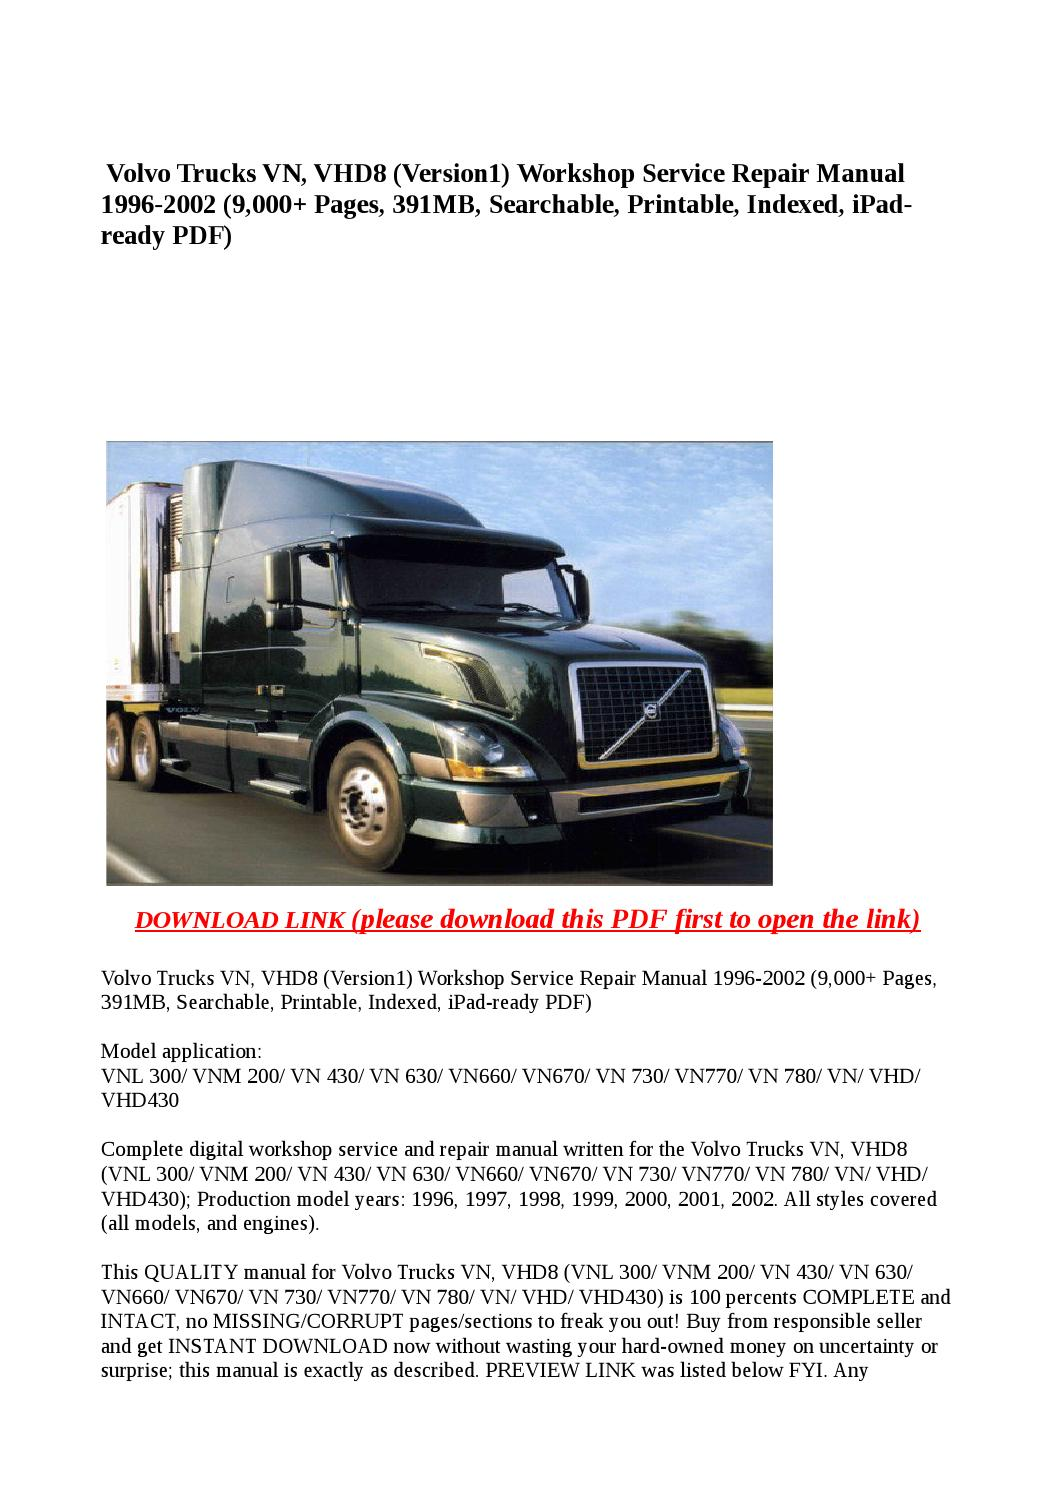 Volvo trucks vn, vhd8 (version1) workshop service repair manual 1996 2002  (9,000 pages, 391mb, searc by buhbu - issuu